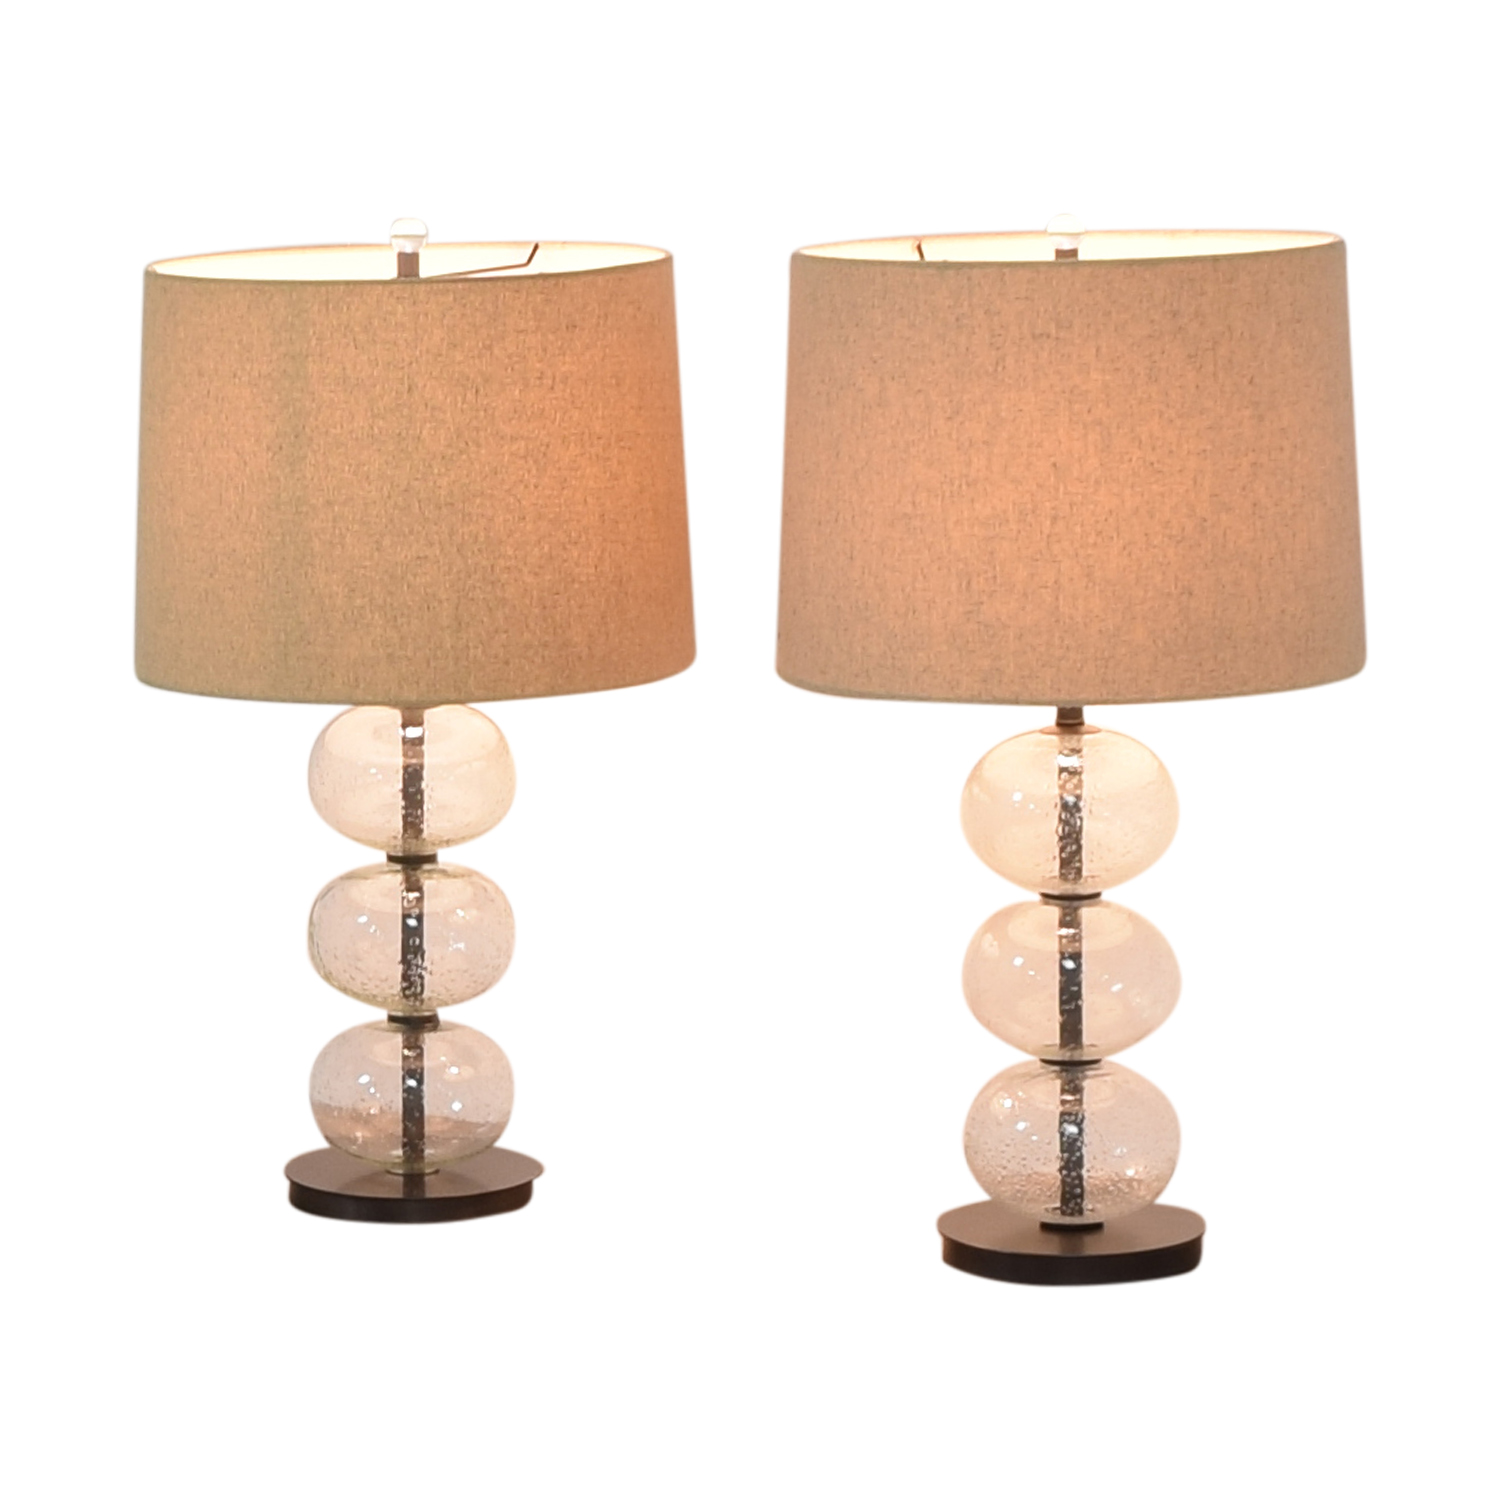 West Elm West Elm Abacus Lamps used